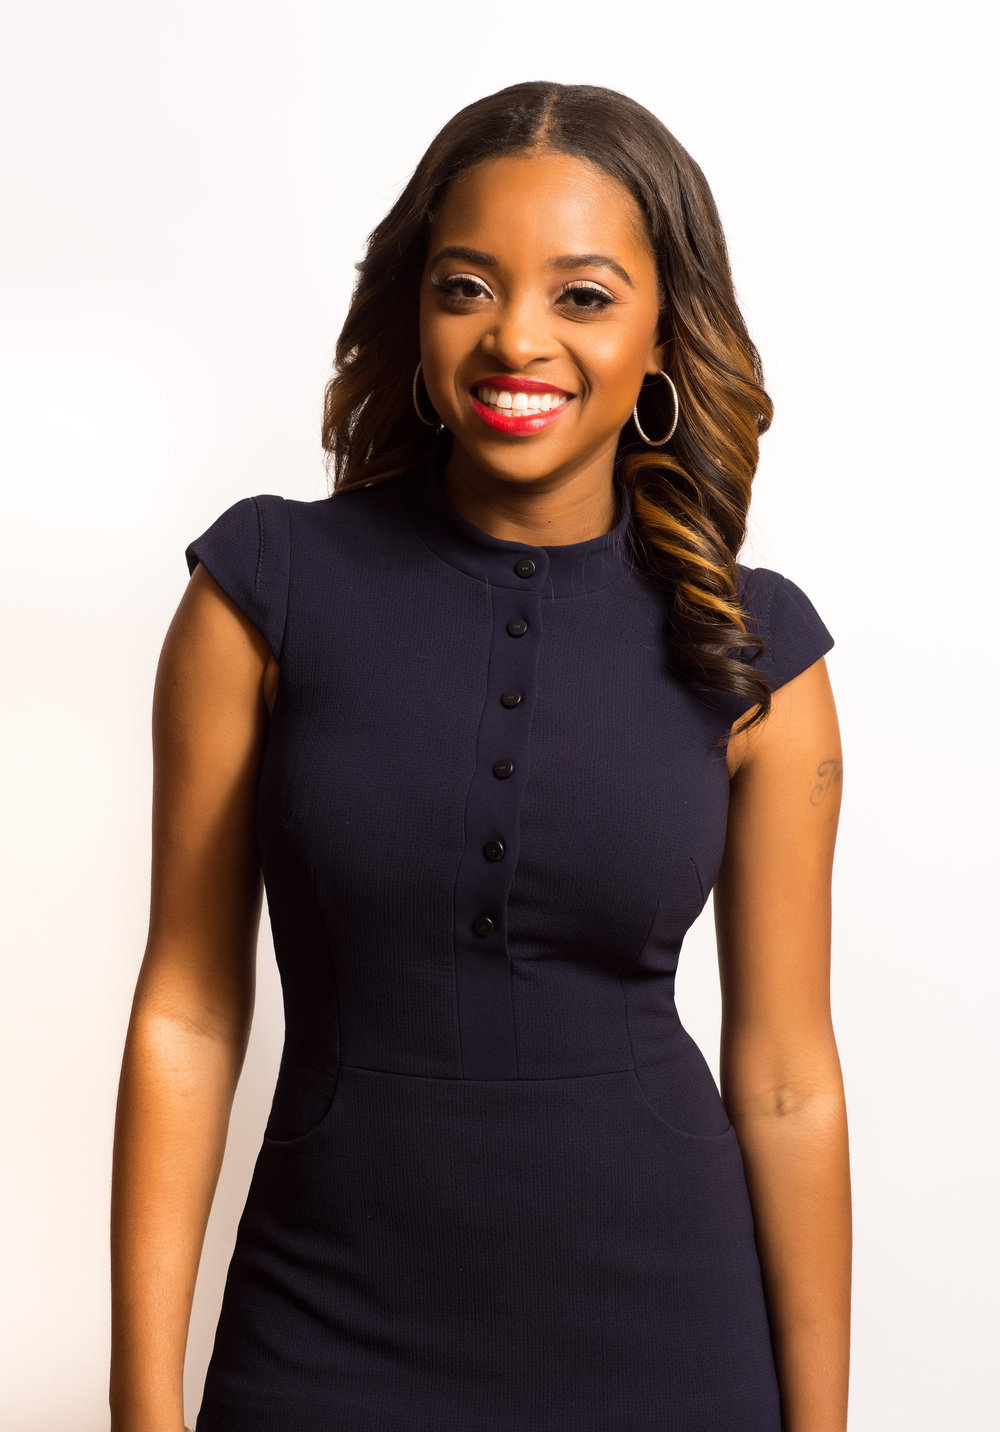 Women's March co-president Tamika Mallory